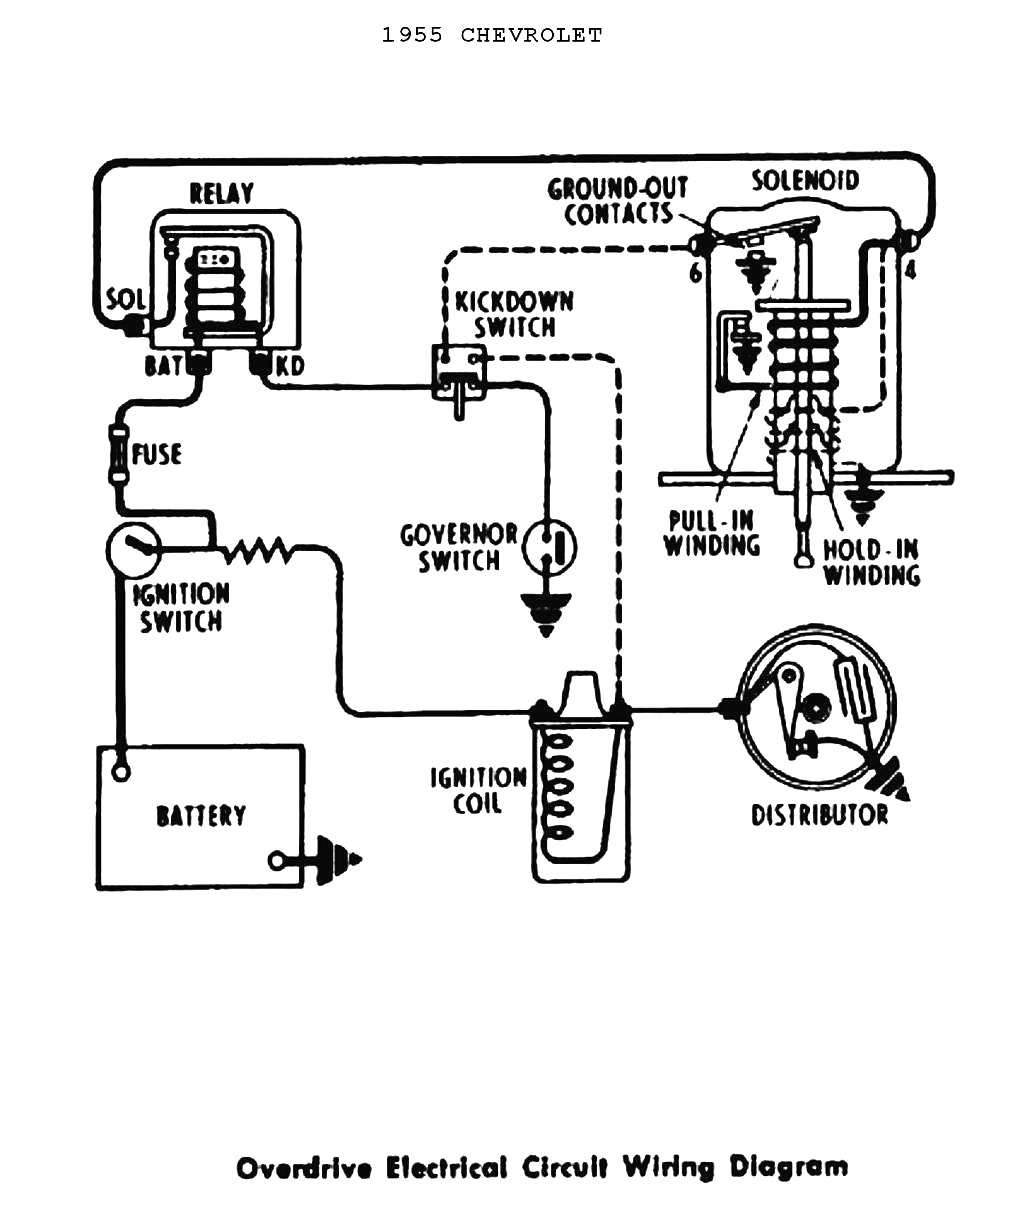 1955 chevy heater wiring diagram